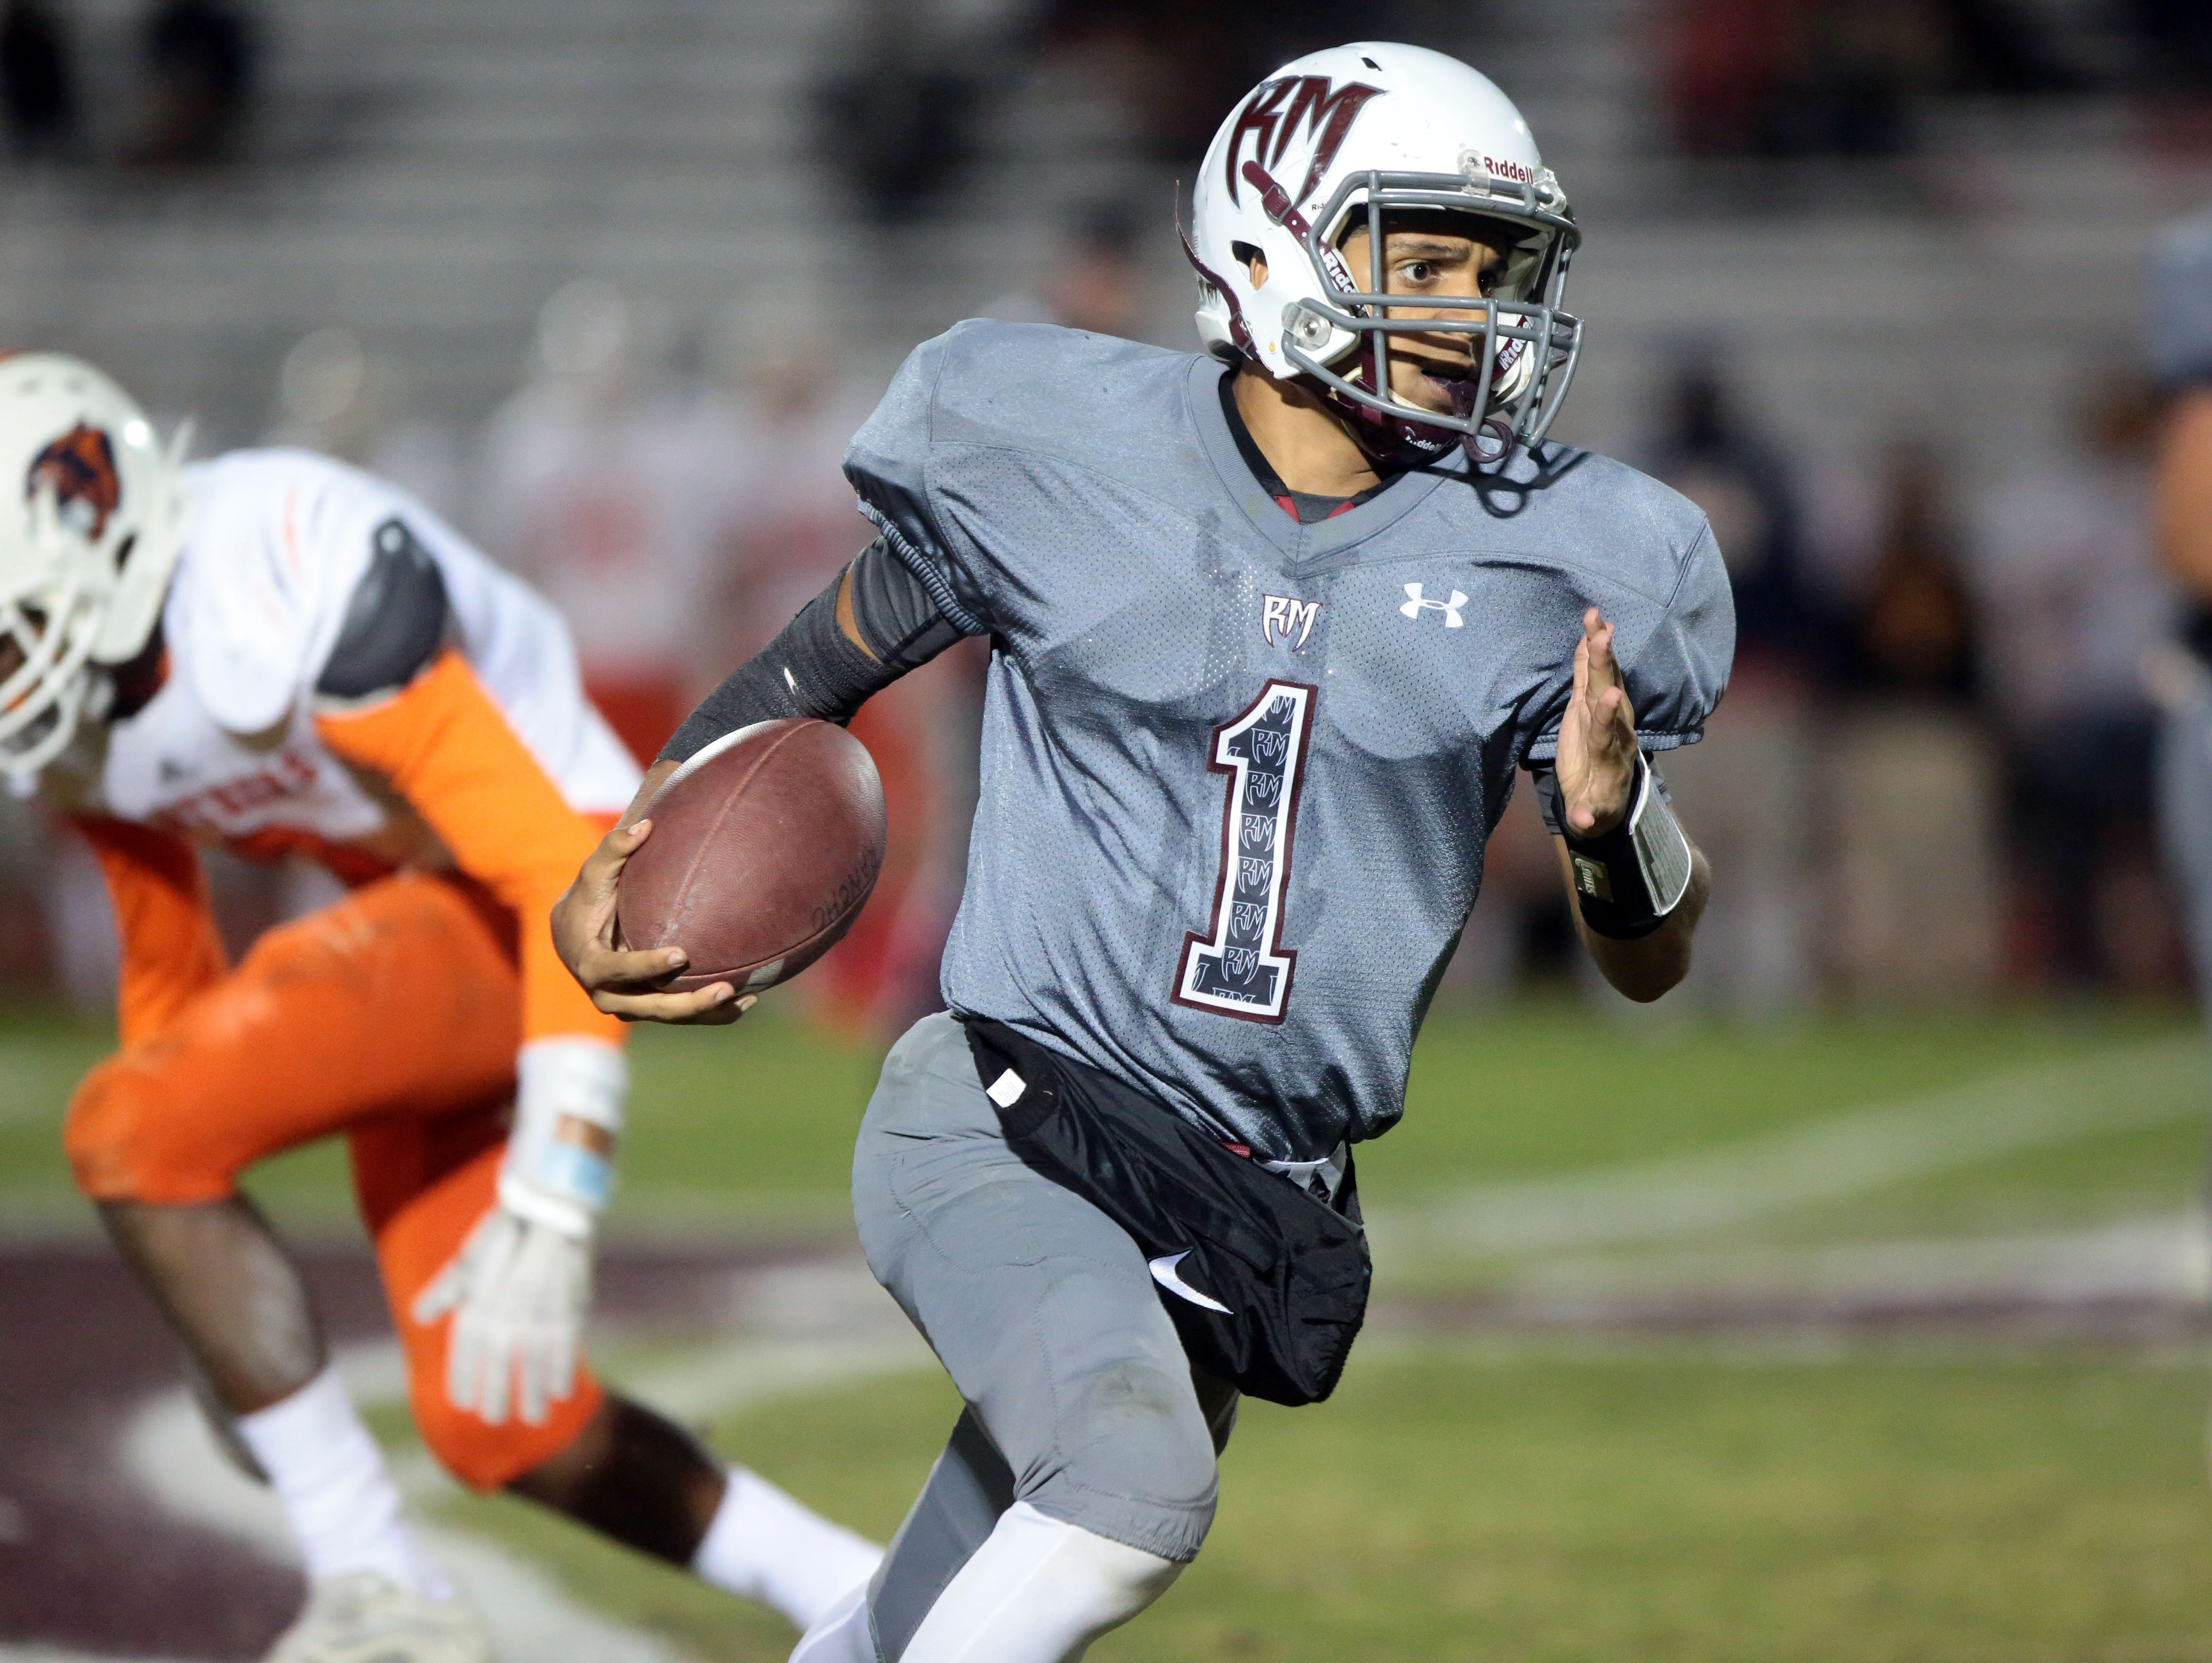 Rancho Mirage quarterback Marques Prior carries the ball for a first down against Polytechnic on Friday in Rancho Mirage.